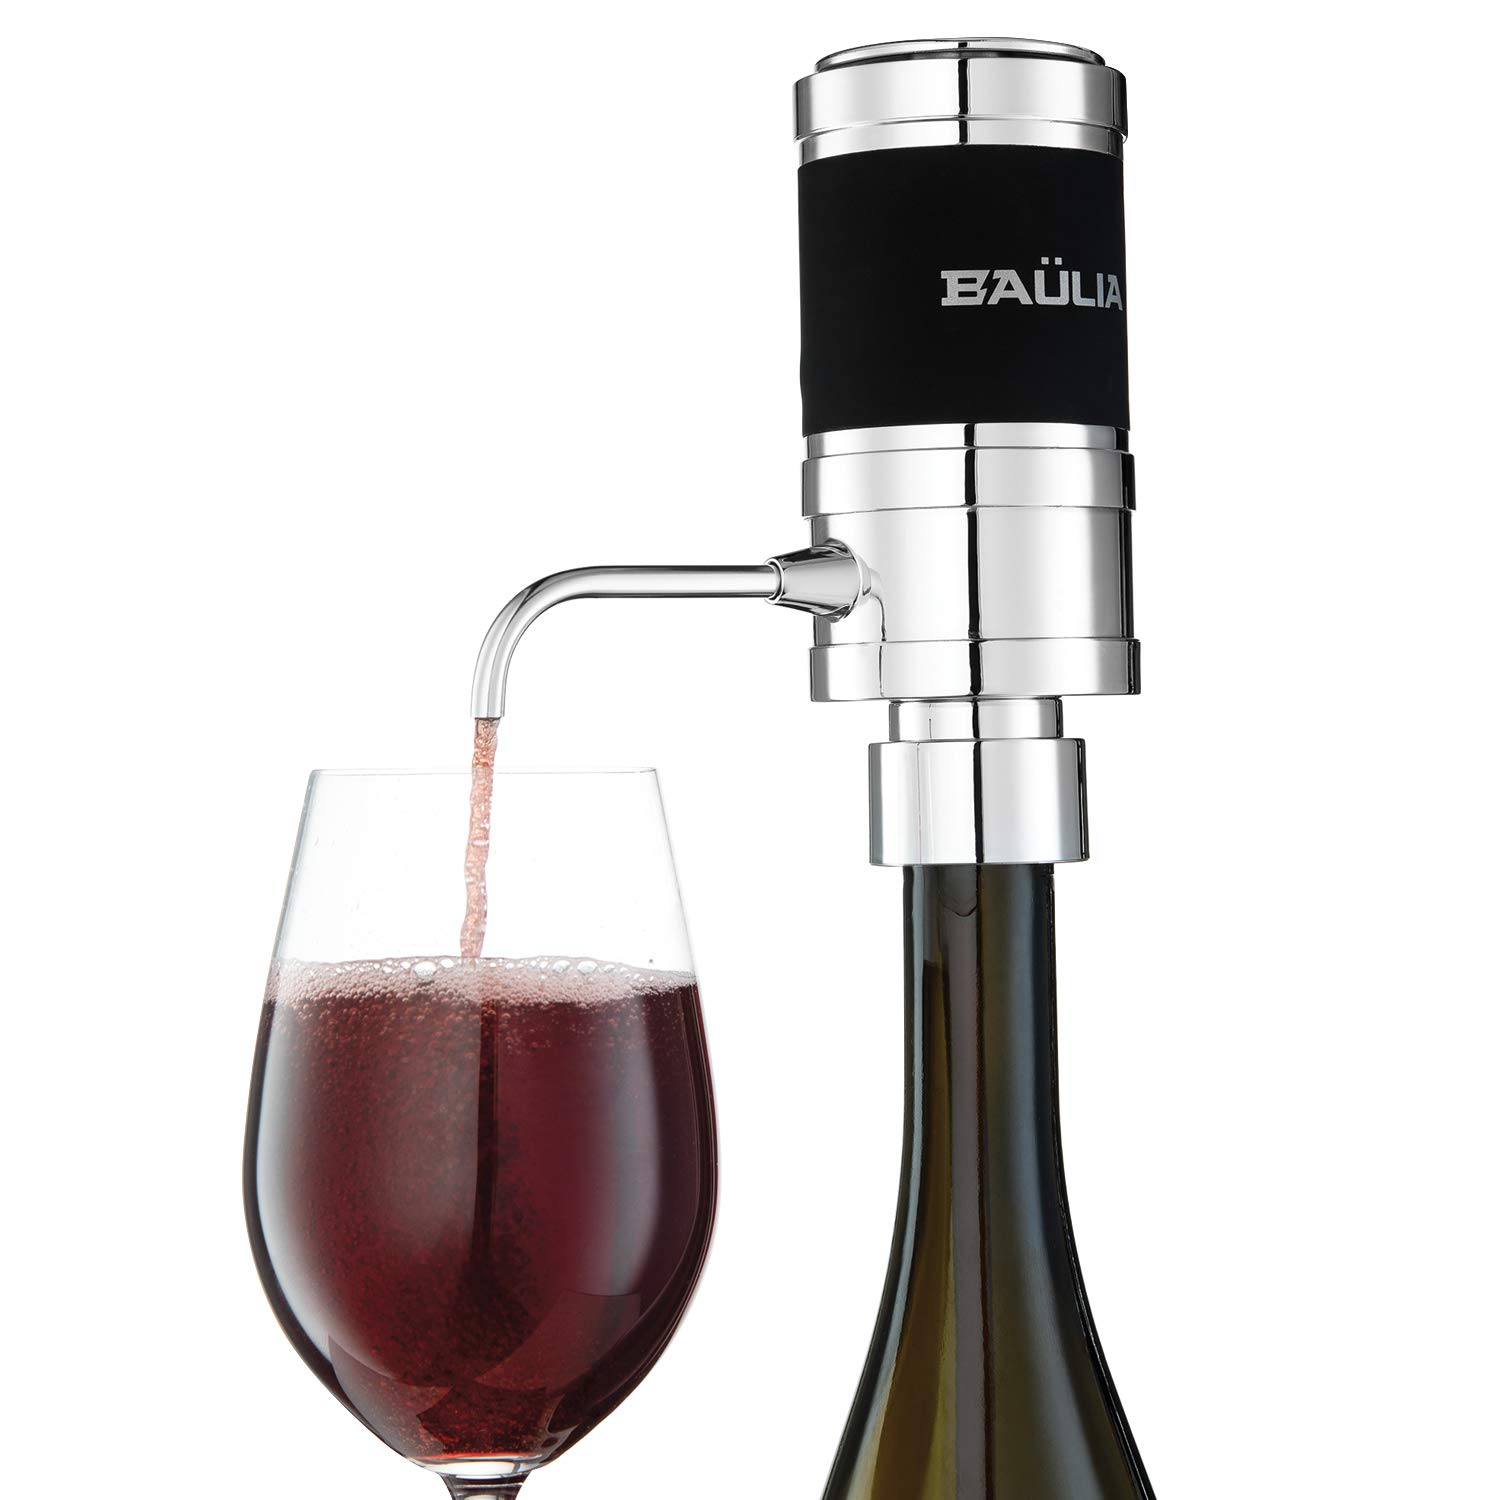 Pump Dispenser with Vacuum Sealer Baulia WA819 Electric Aerator One Touch Operation Instantly Allow Wine to Breath Silver